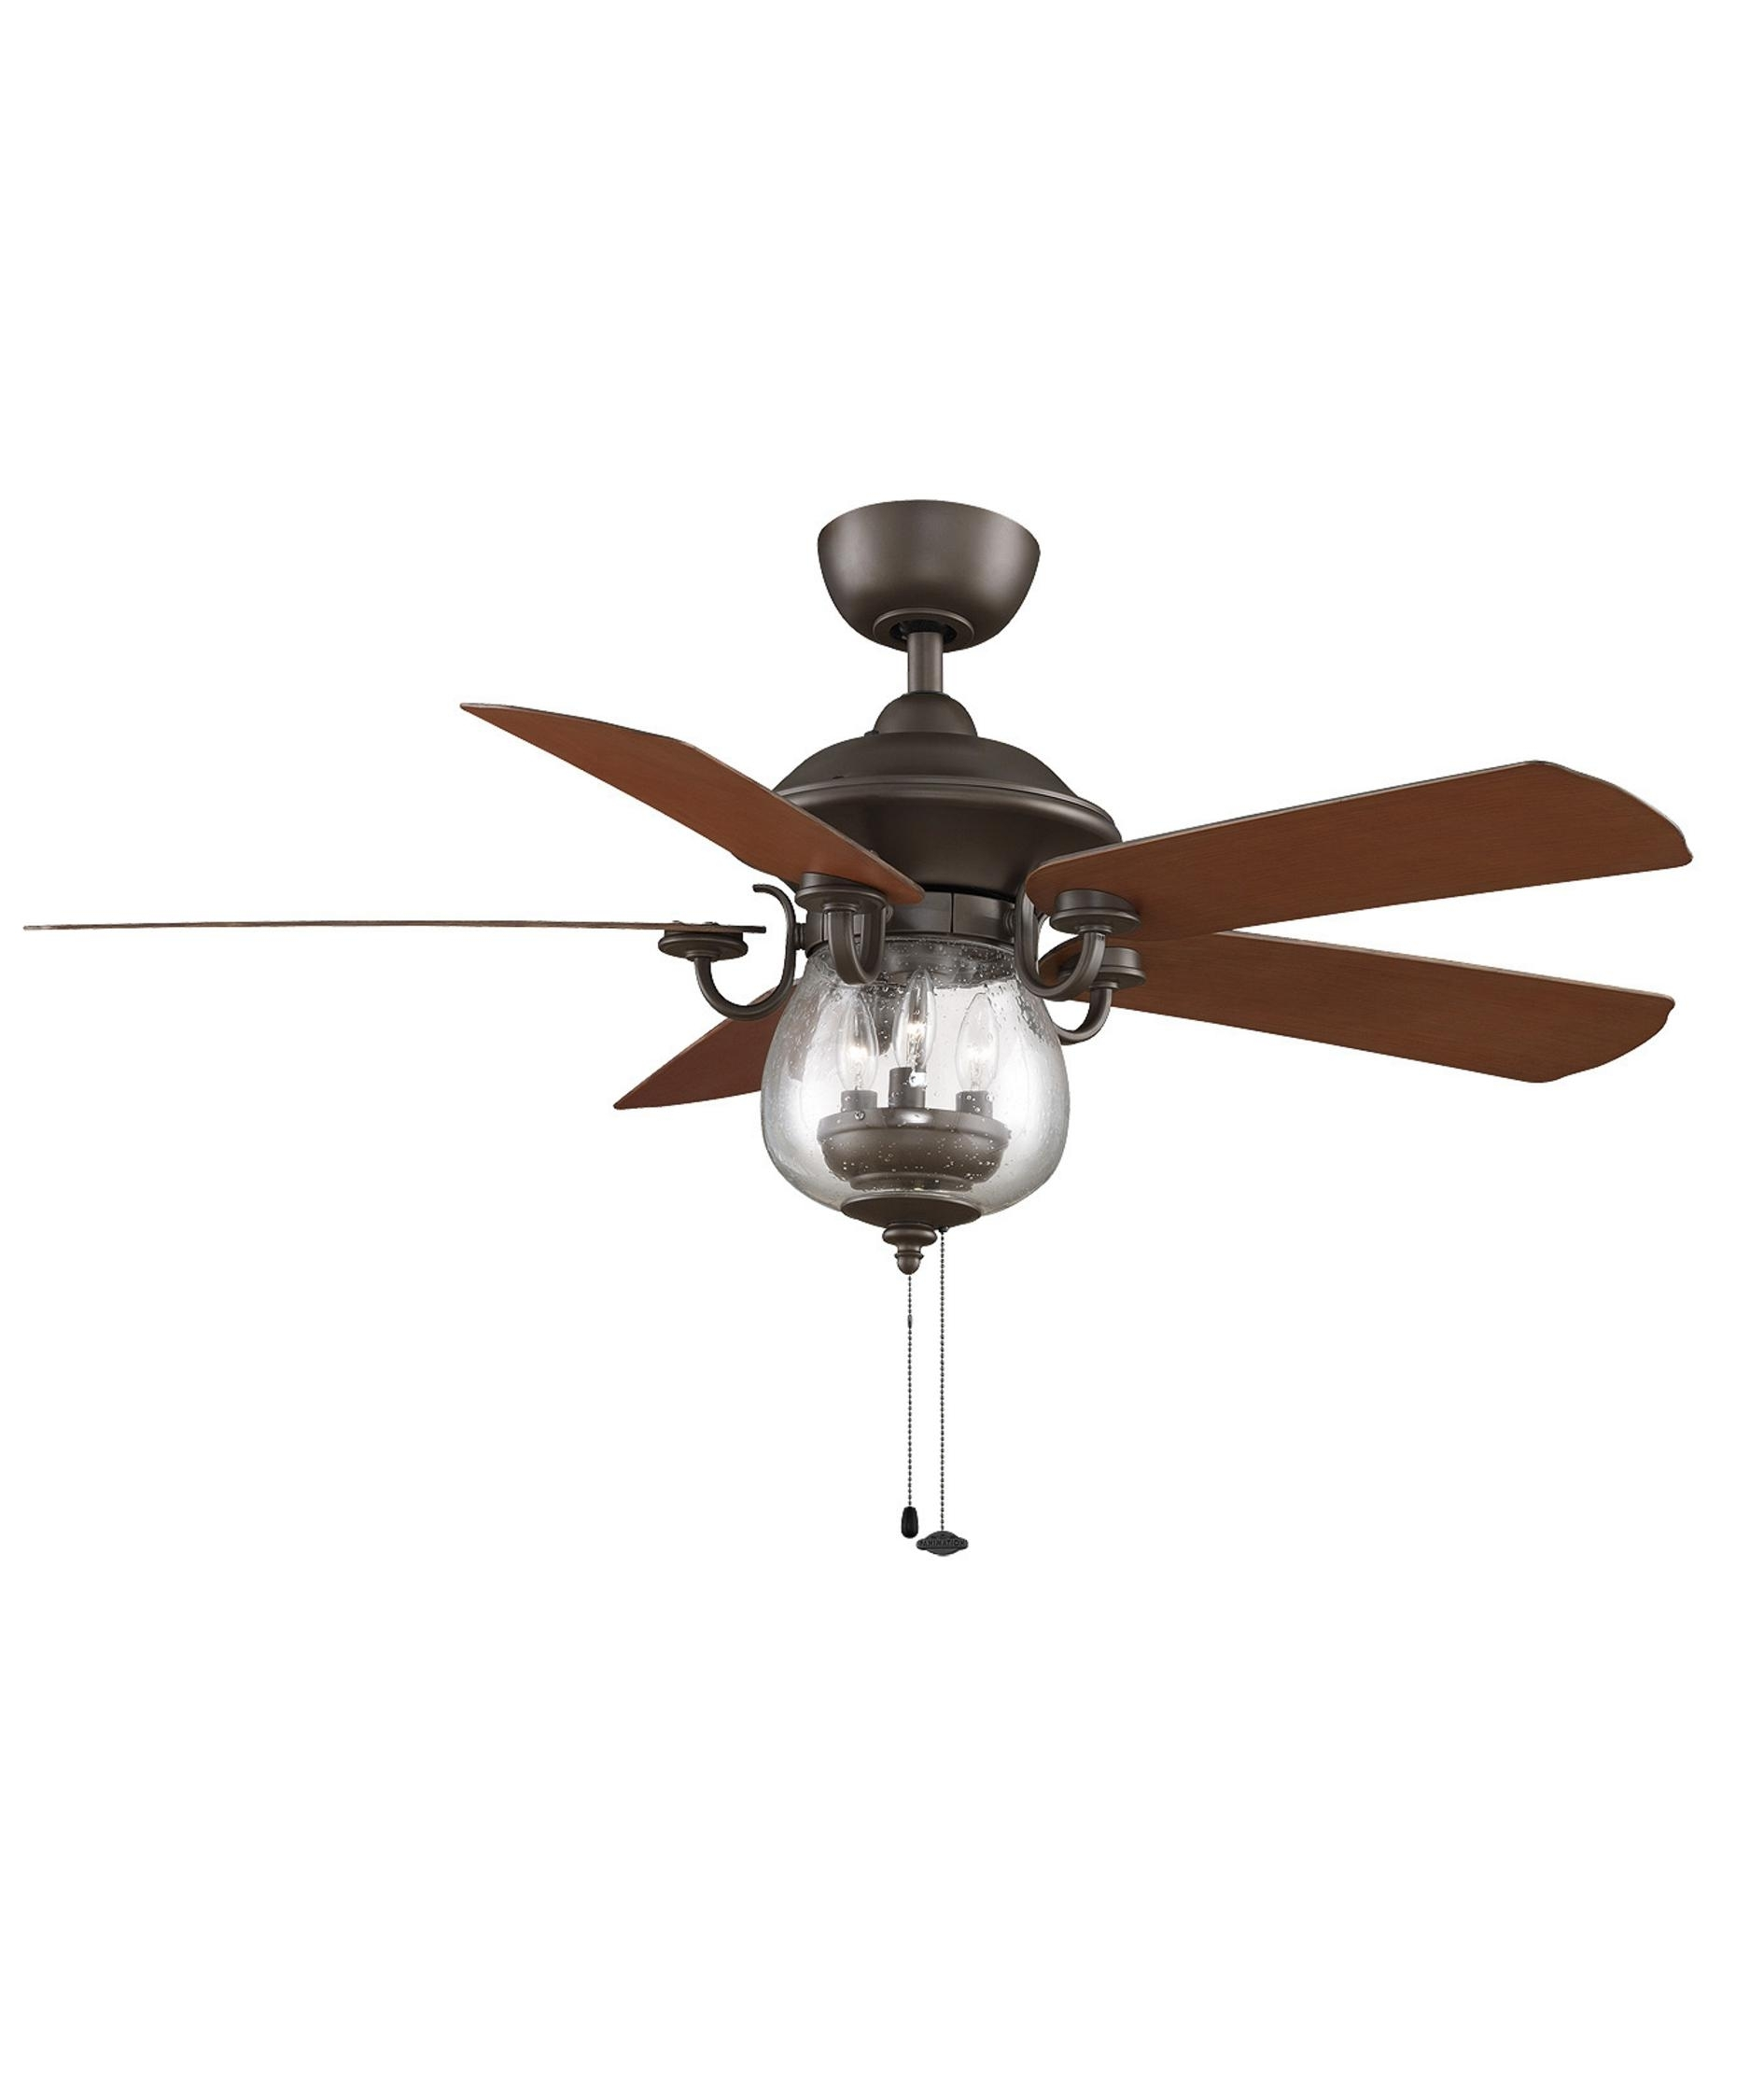 Fanimation Fp7954 Crestford 52 Inch 5 Blade Ceiling Fan | Capitol Intended For Outdoor Ceiling Fan Lights (#4 of 15)